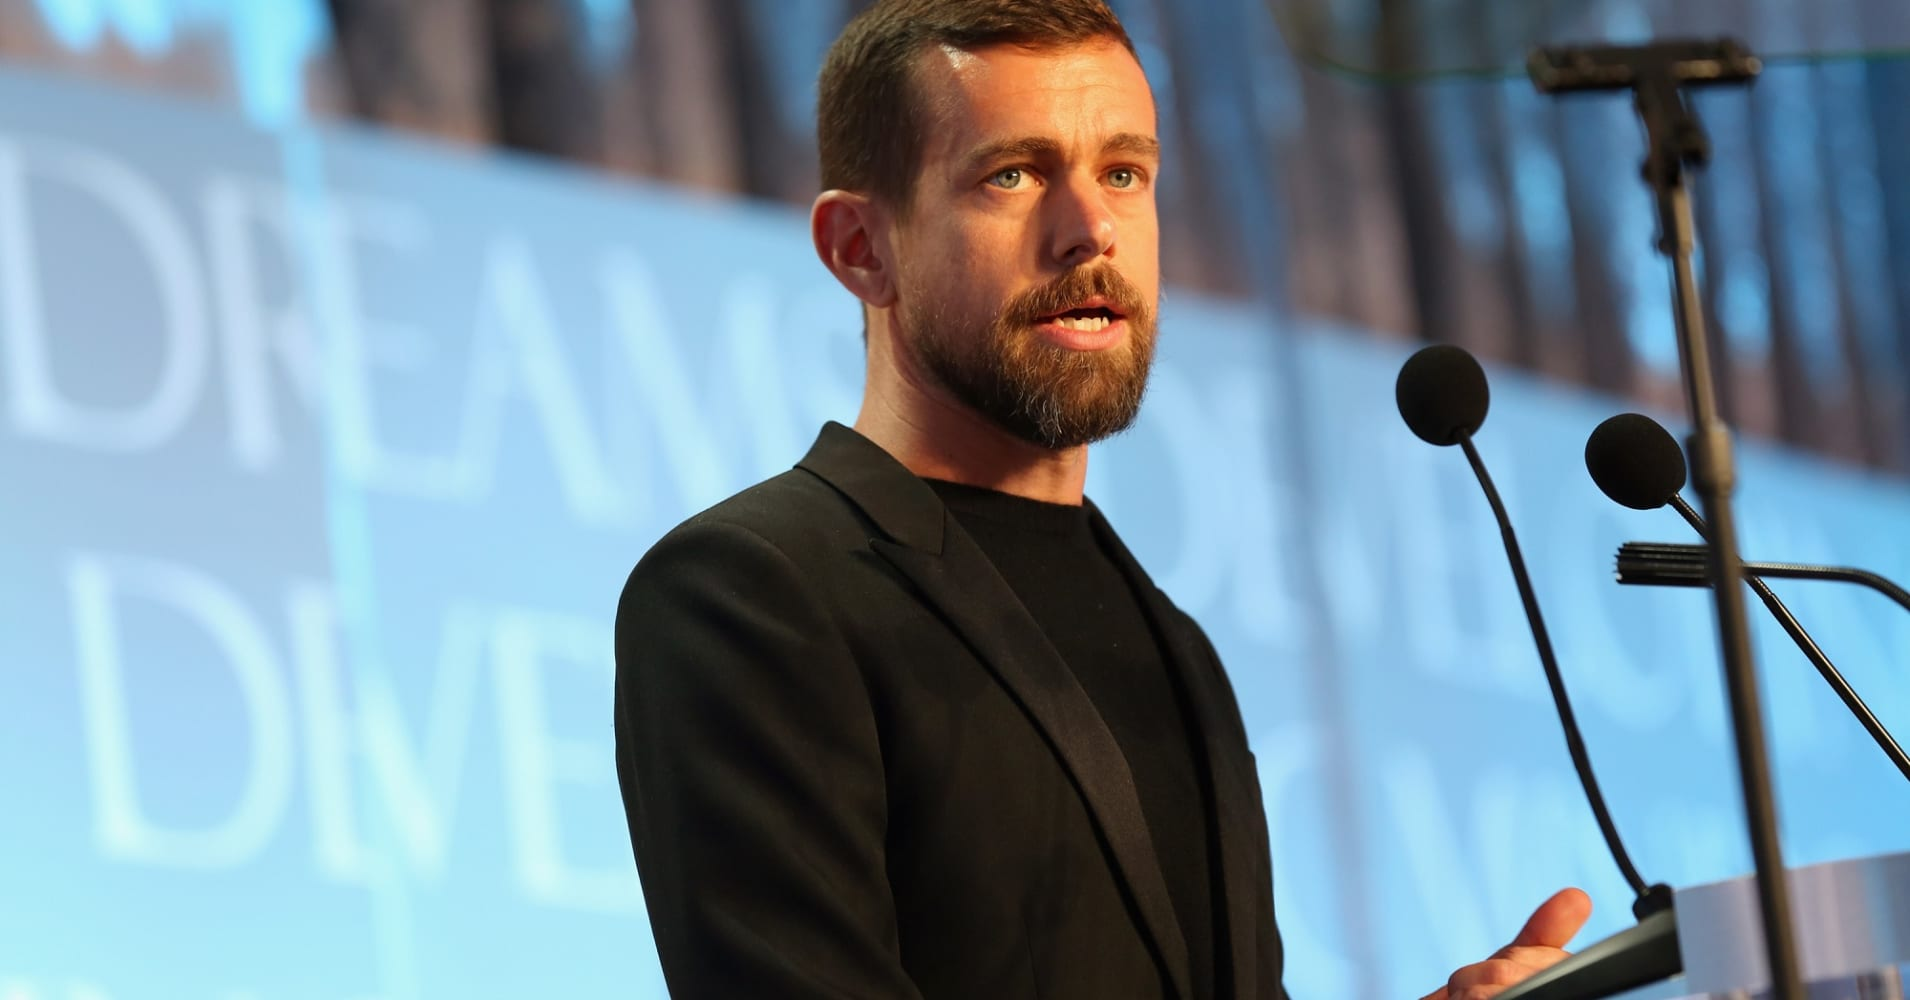 Twitter's CEO just admitted the platform has problems, and he's asking for help to fix them